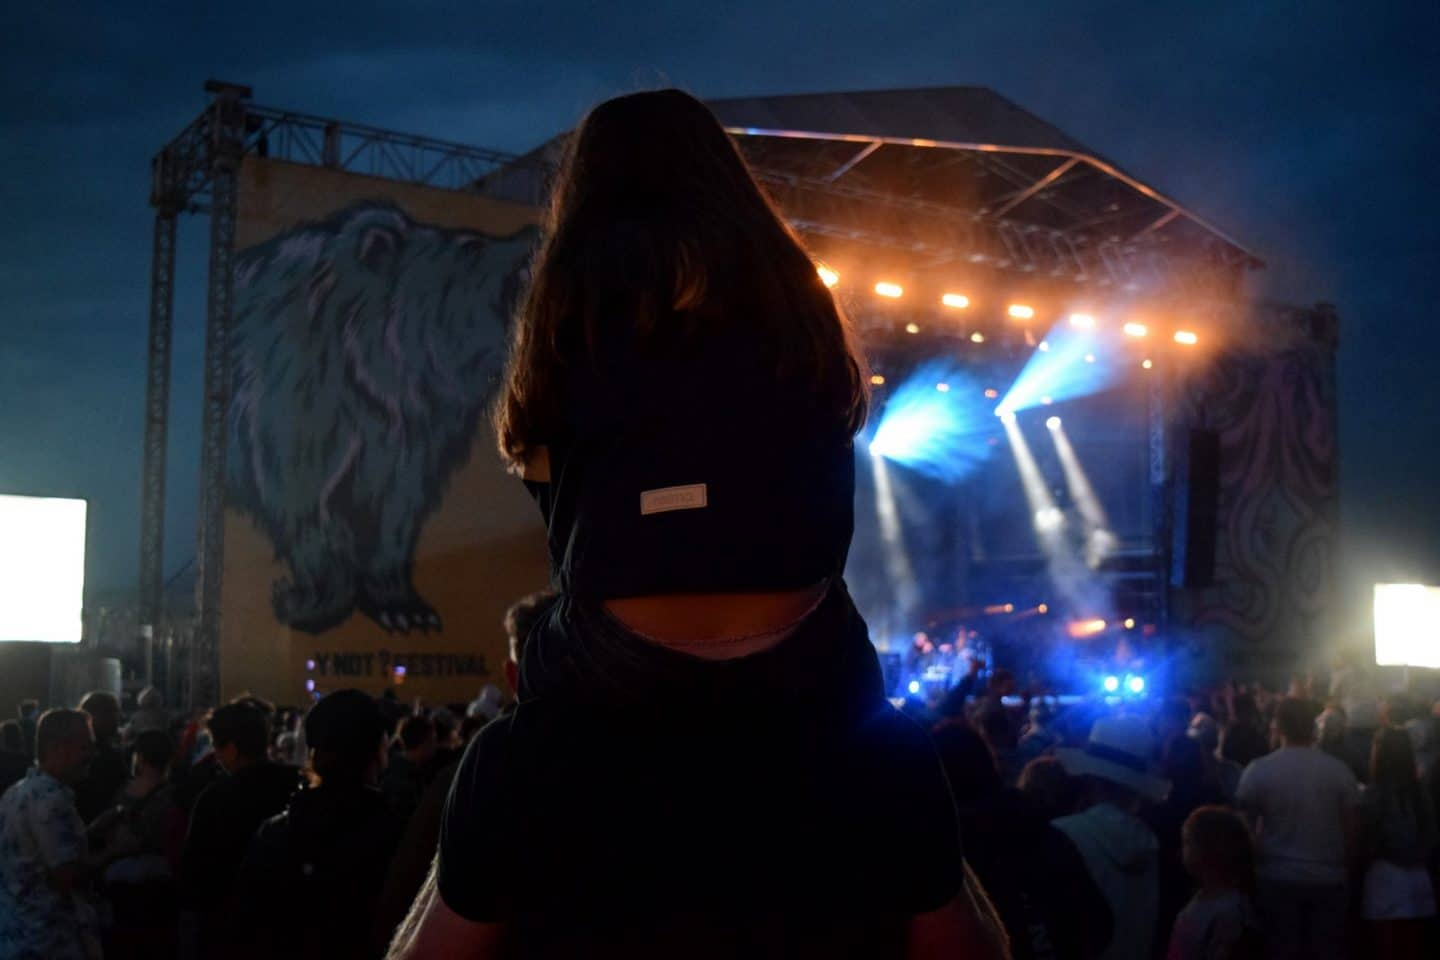 Chloe sat on Dave's shoulders watching Elbow at Y Not Festival